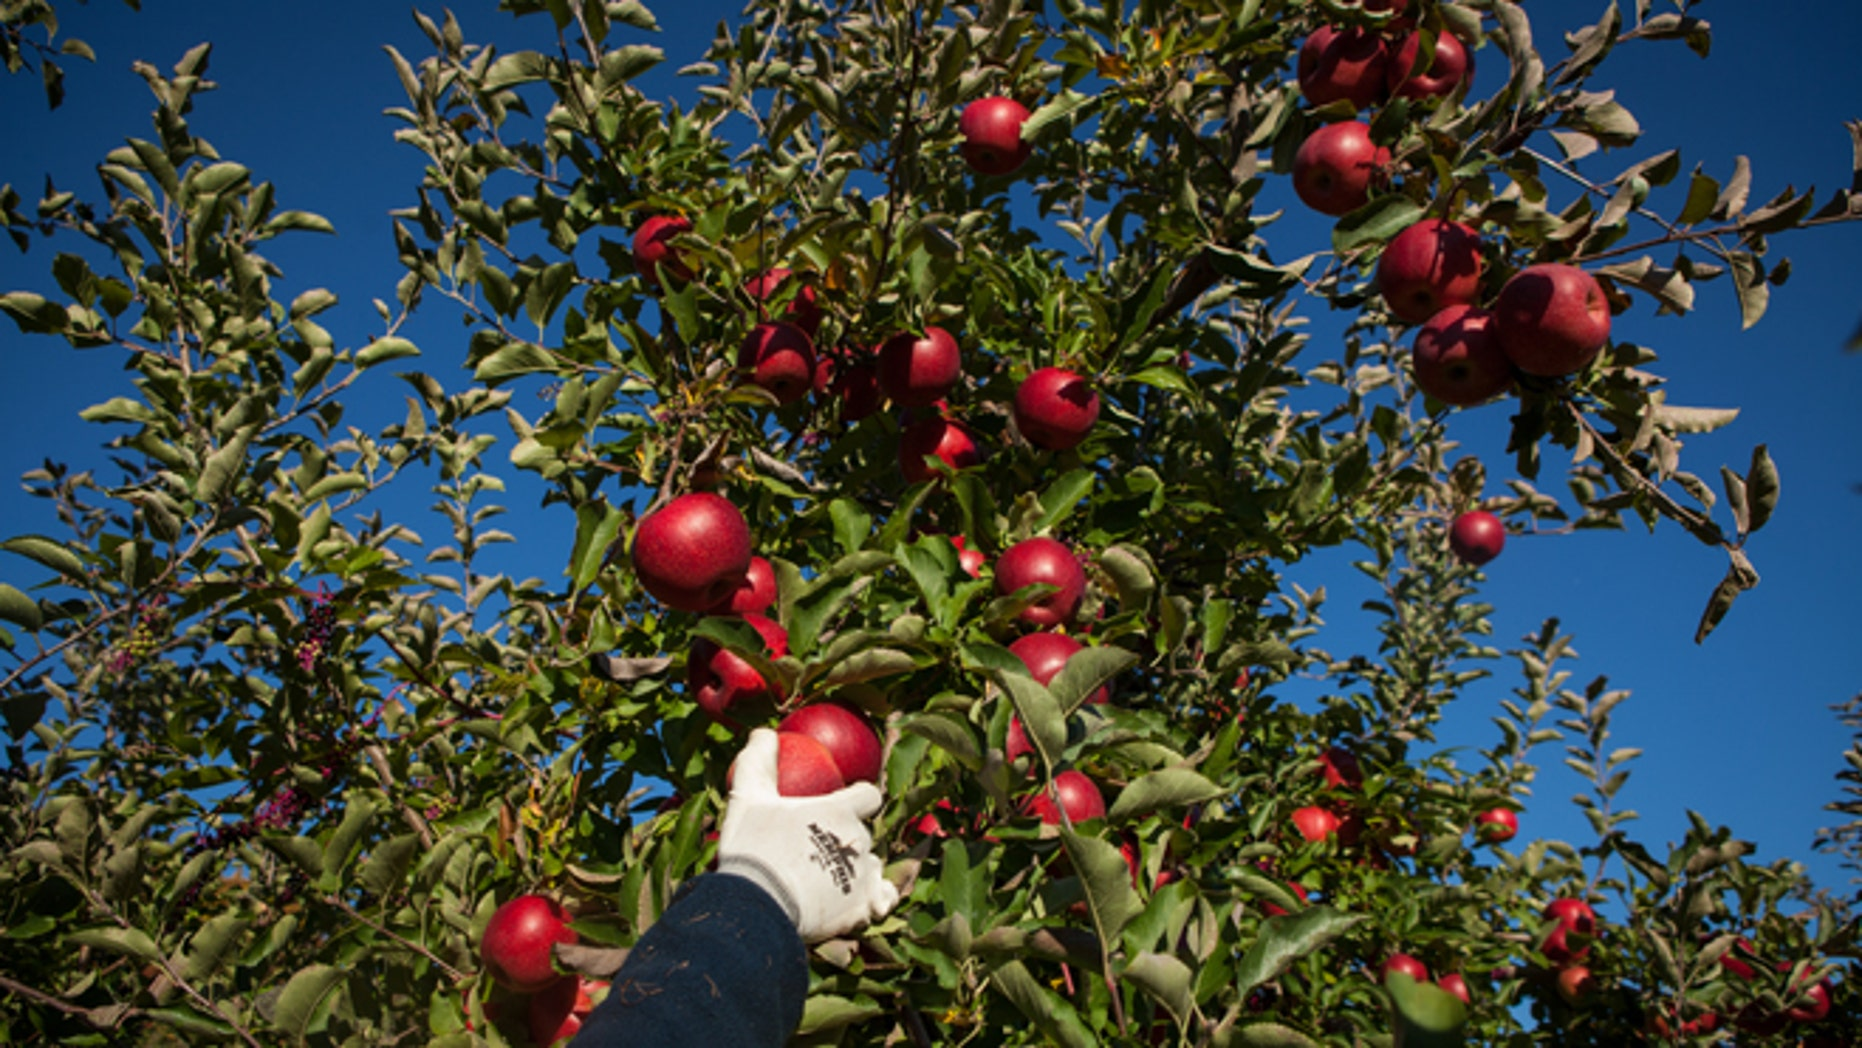 DEERFIELD, MA - OCTOBER 15:  Farmhand Louie Knolle harvests Empire apples at Clarkdale Fruit Farms on October 15, 2015 in Deerfield, Massachusetts. Favorable weather conditions over the summer and fall has led to a abundant apple harvest this year.  (Photo by Matthew Cavanaugh/Getty Images)